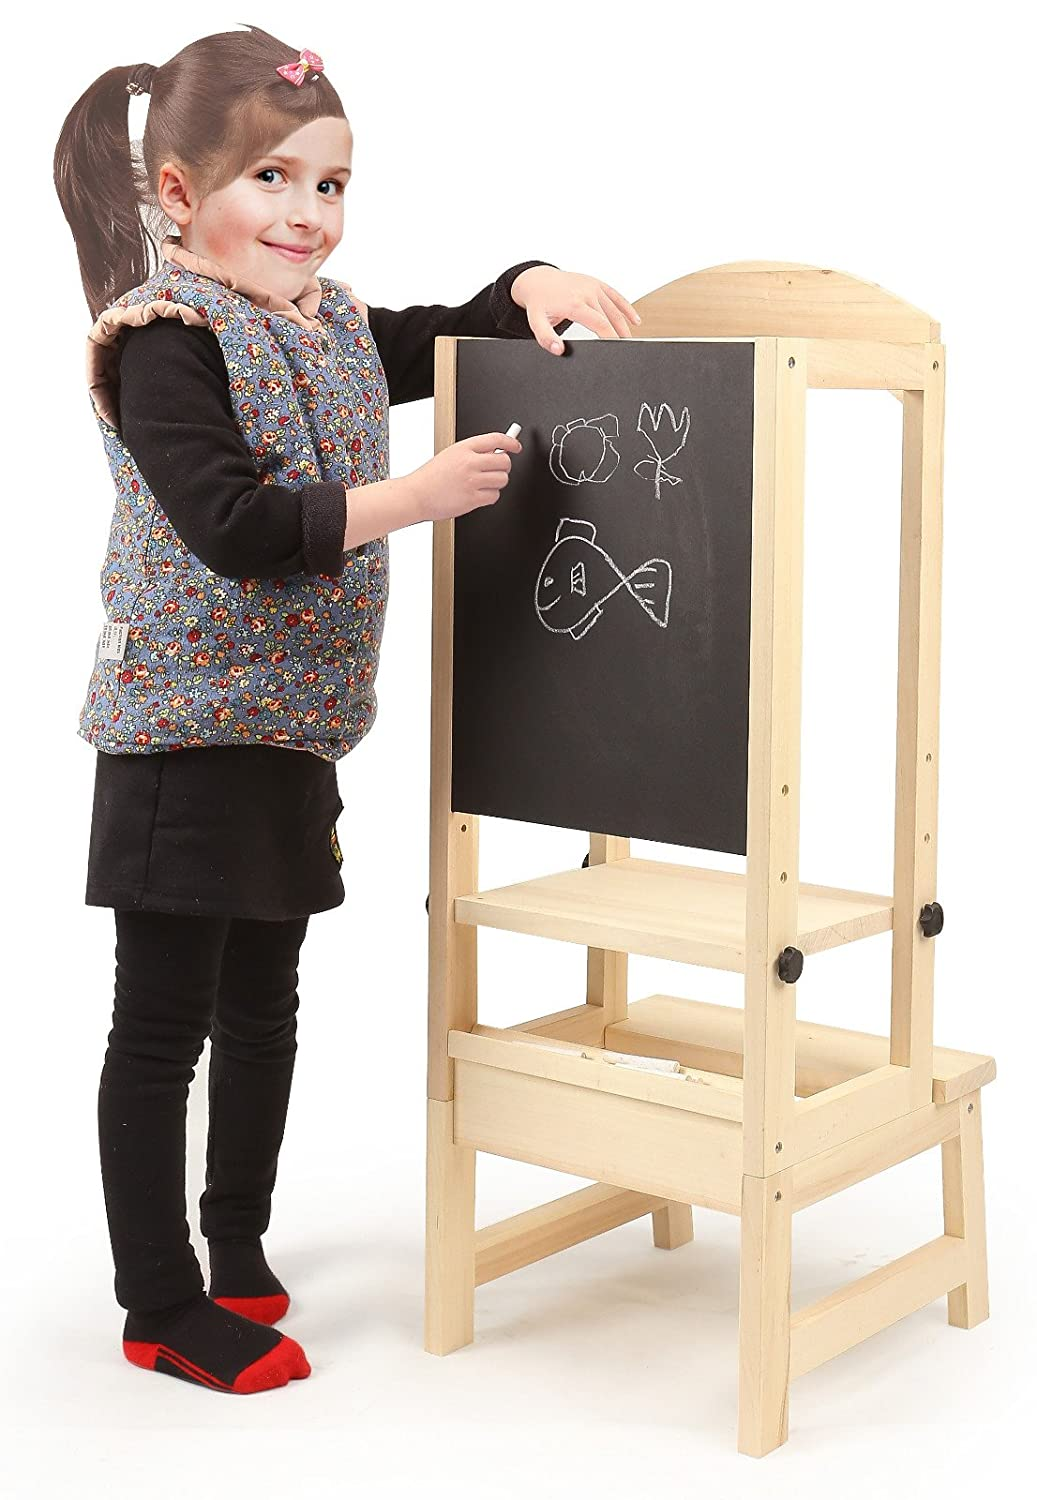 Kids kitchen helper Toddler Step Stool wit drawing board Adjustable Height chair chuck & blair